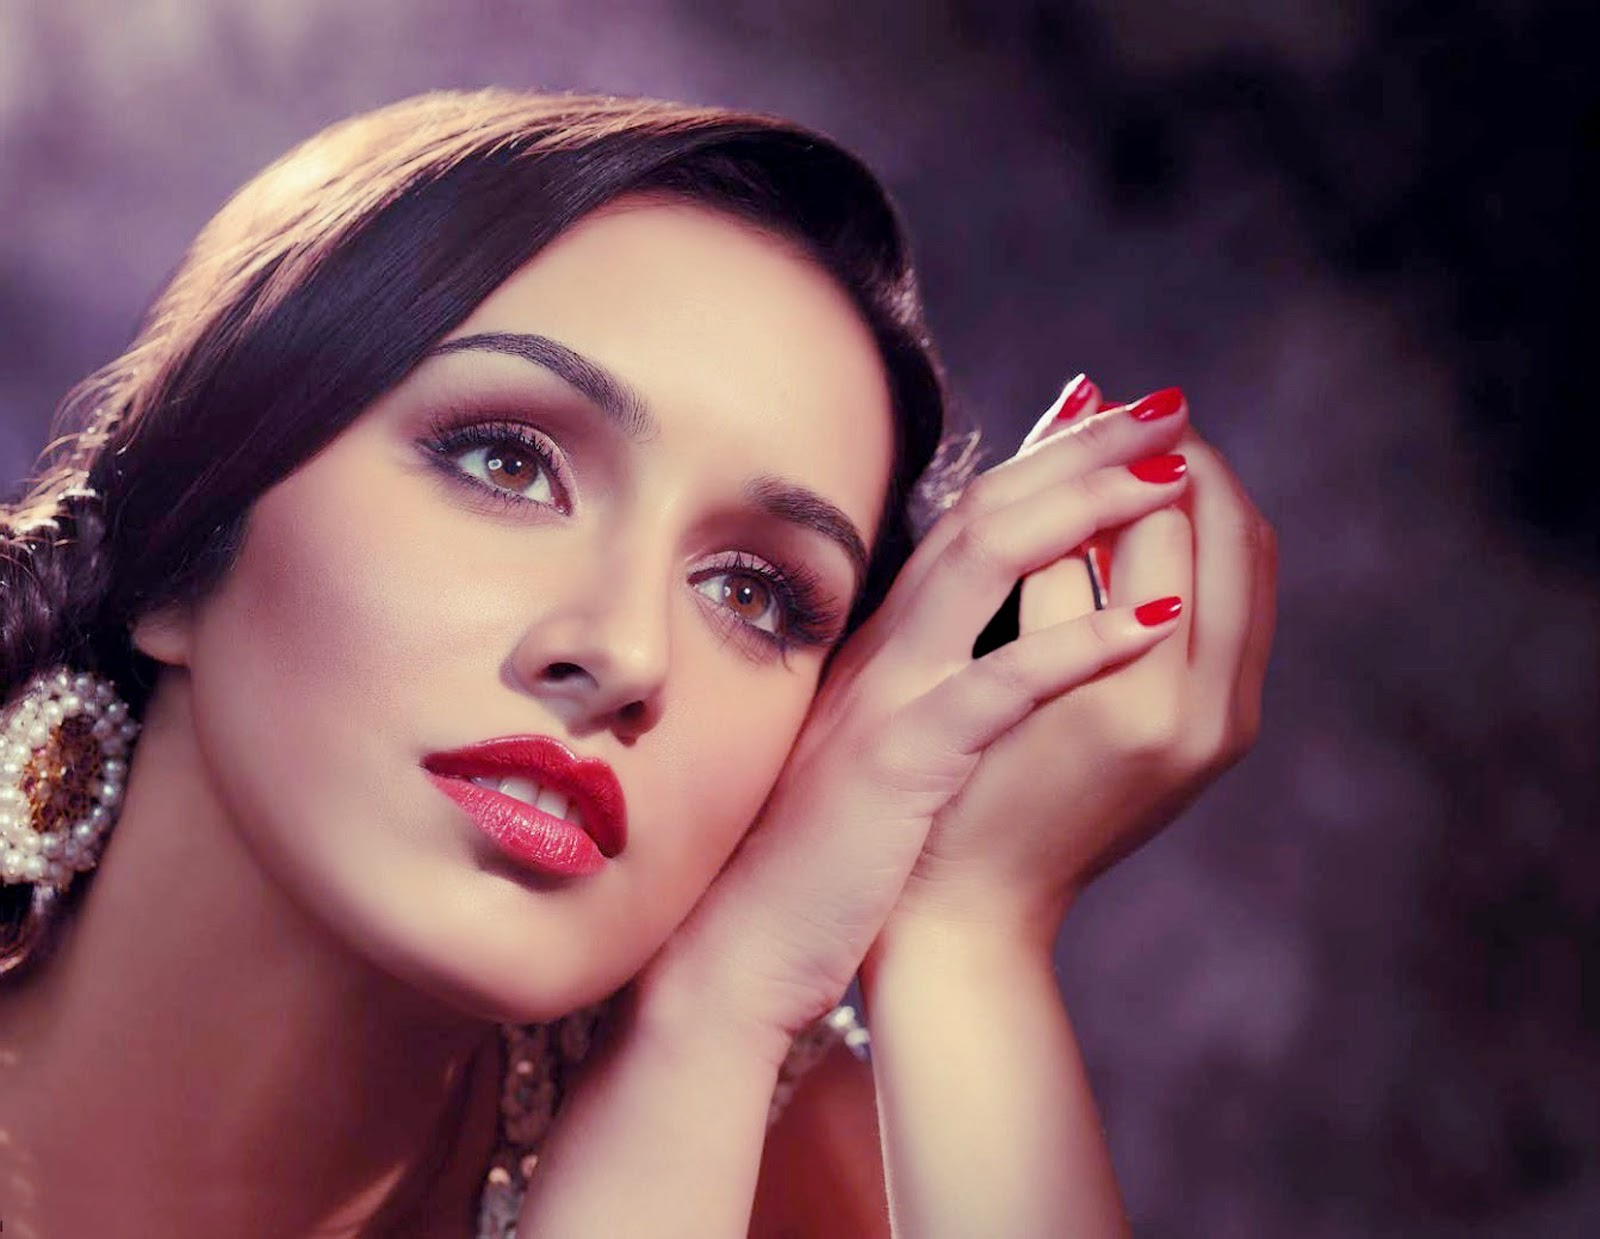 Full HQ Photos of Shraddha Kapoor |  Shraddha Kapoor HD Wallpapers & Pictures